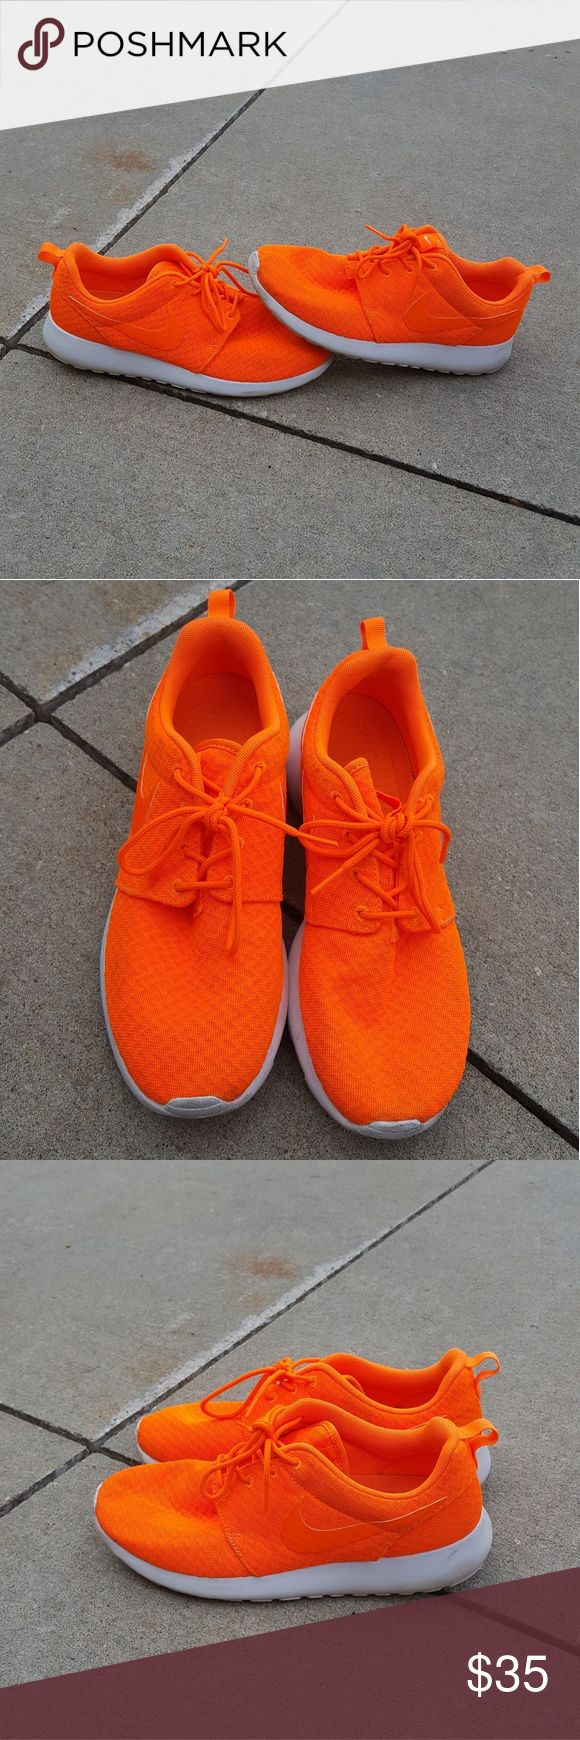 Nike Neon orange roshes Has been worn Shoe size 9 Roshes  Neon orange Has some signs of wear (mud spots/stains)  No Trades Nike Shoes Sneakers